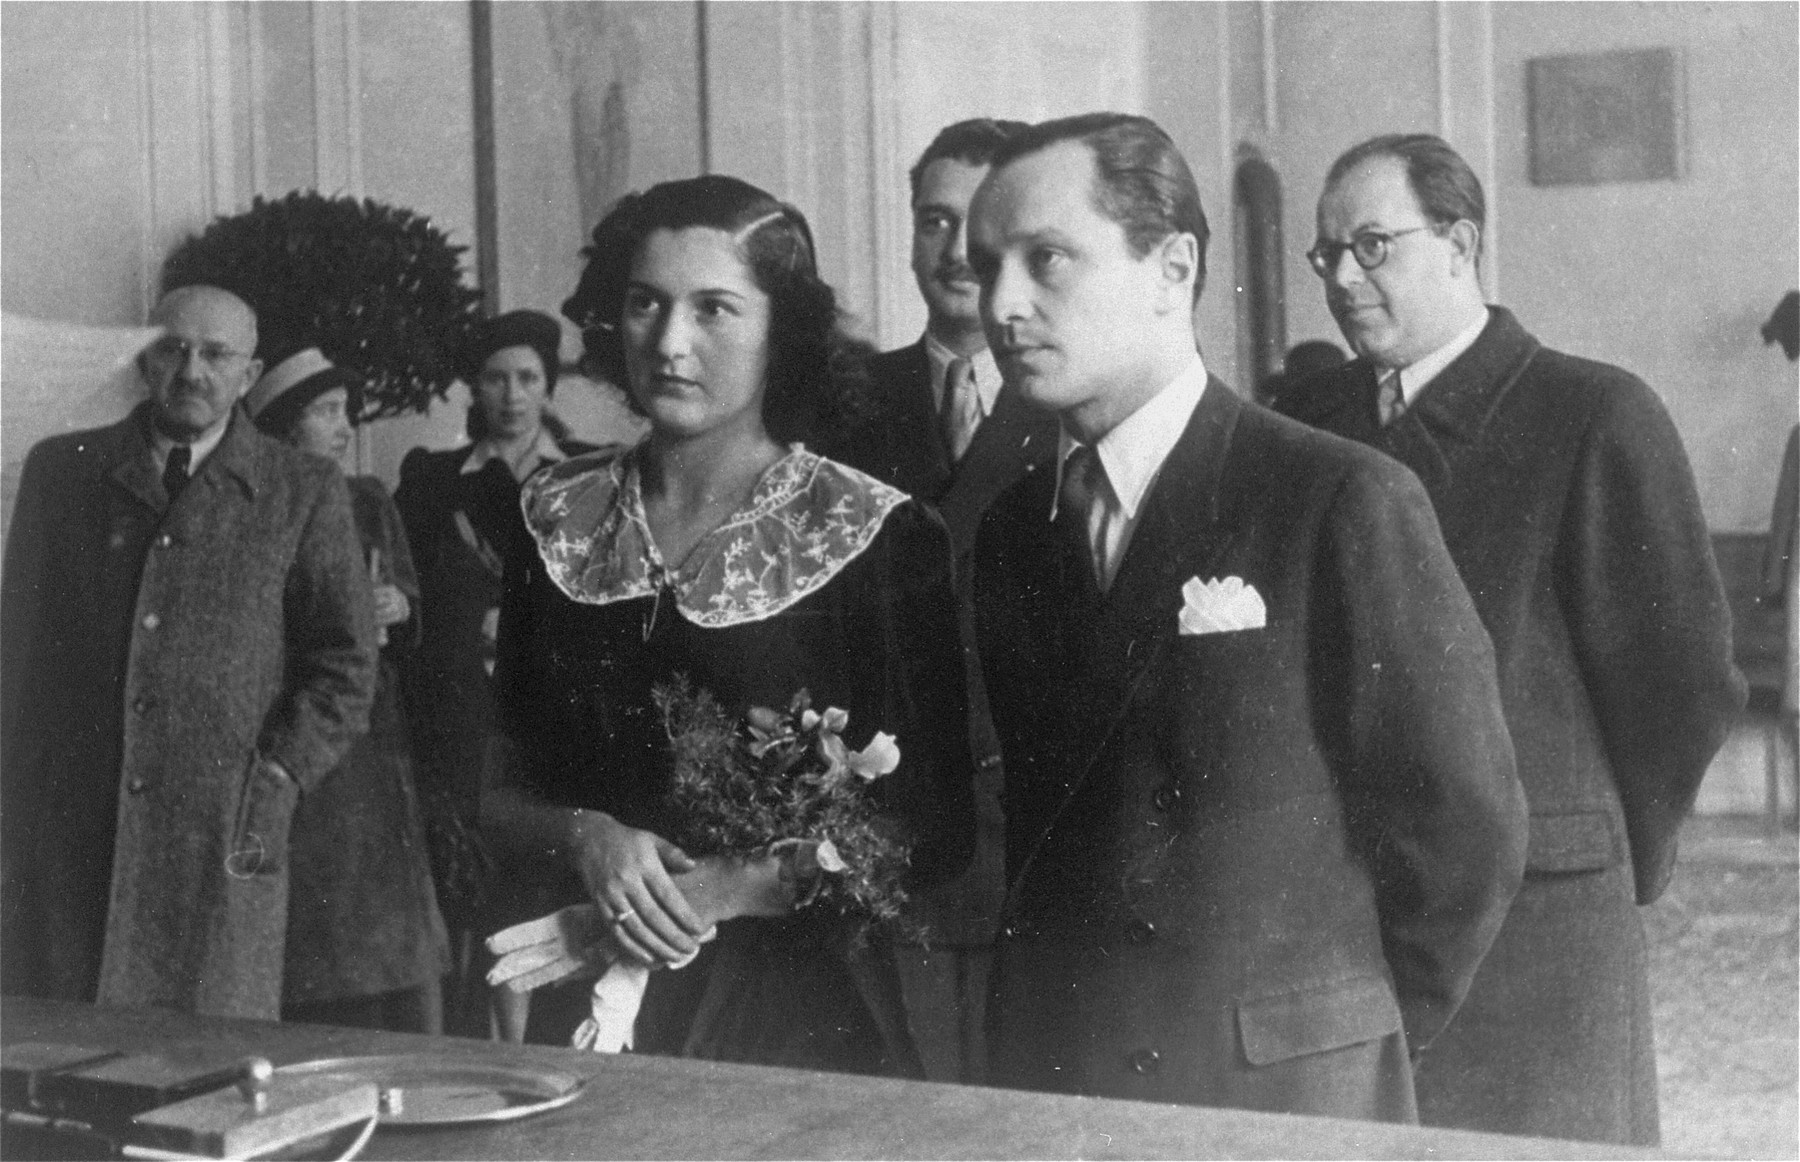 The marriage of Czech-Jewish survivors Frantisek Kohn and Gertie Gans before a judge at the city hall in Prague.    Among those pictured are: Viktor Kohn, who came from Palestine (at the left with his hand in his pocket); Yarmila Guth (behind Viktor, wearing a hat); Zdenka Neuman (next to Yarmila ); Otto Gans Gregor (Gertie's brother, standing behind the couple, with a mustache); and Dr. Guth (at the right, wearing glasses).